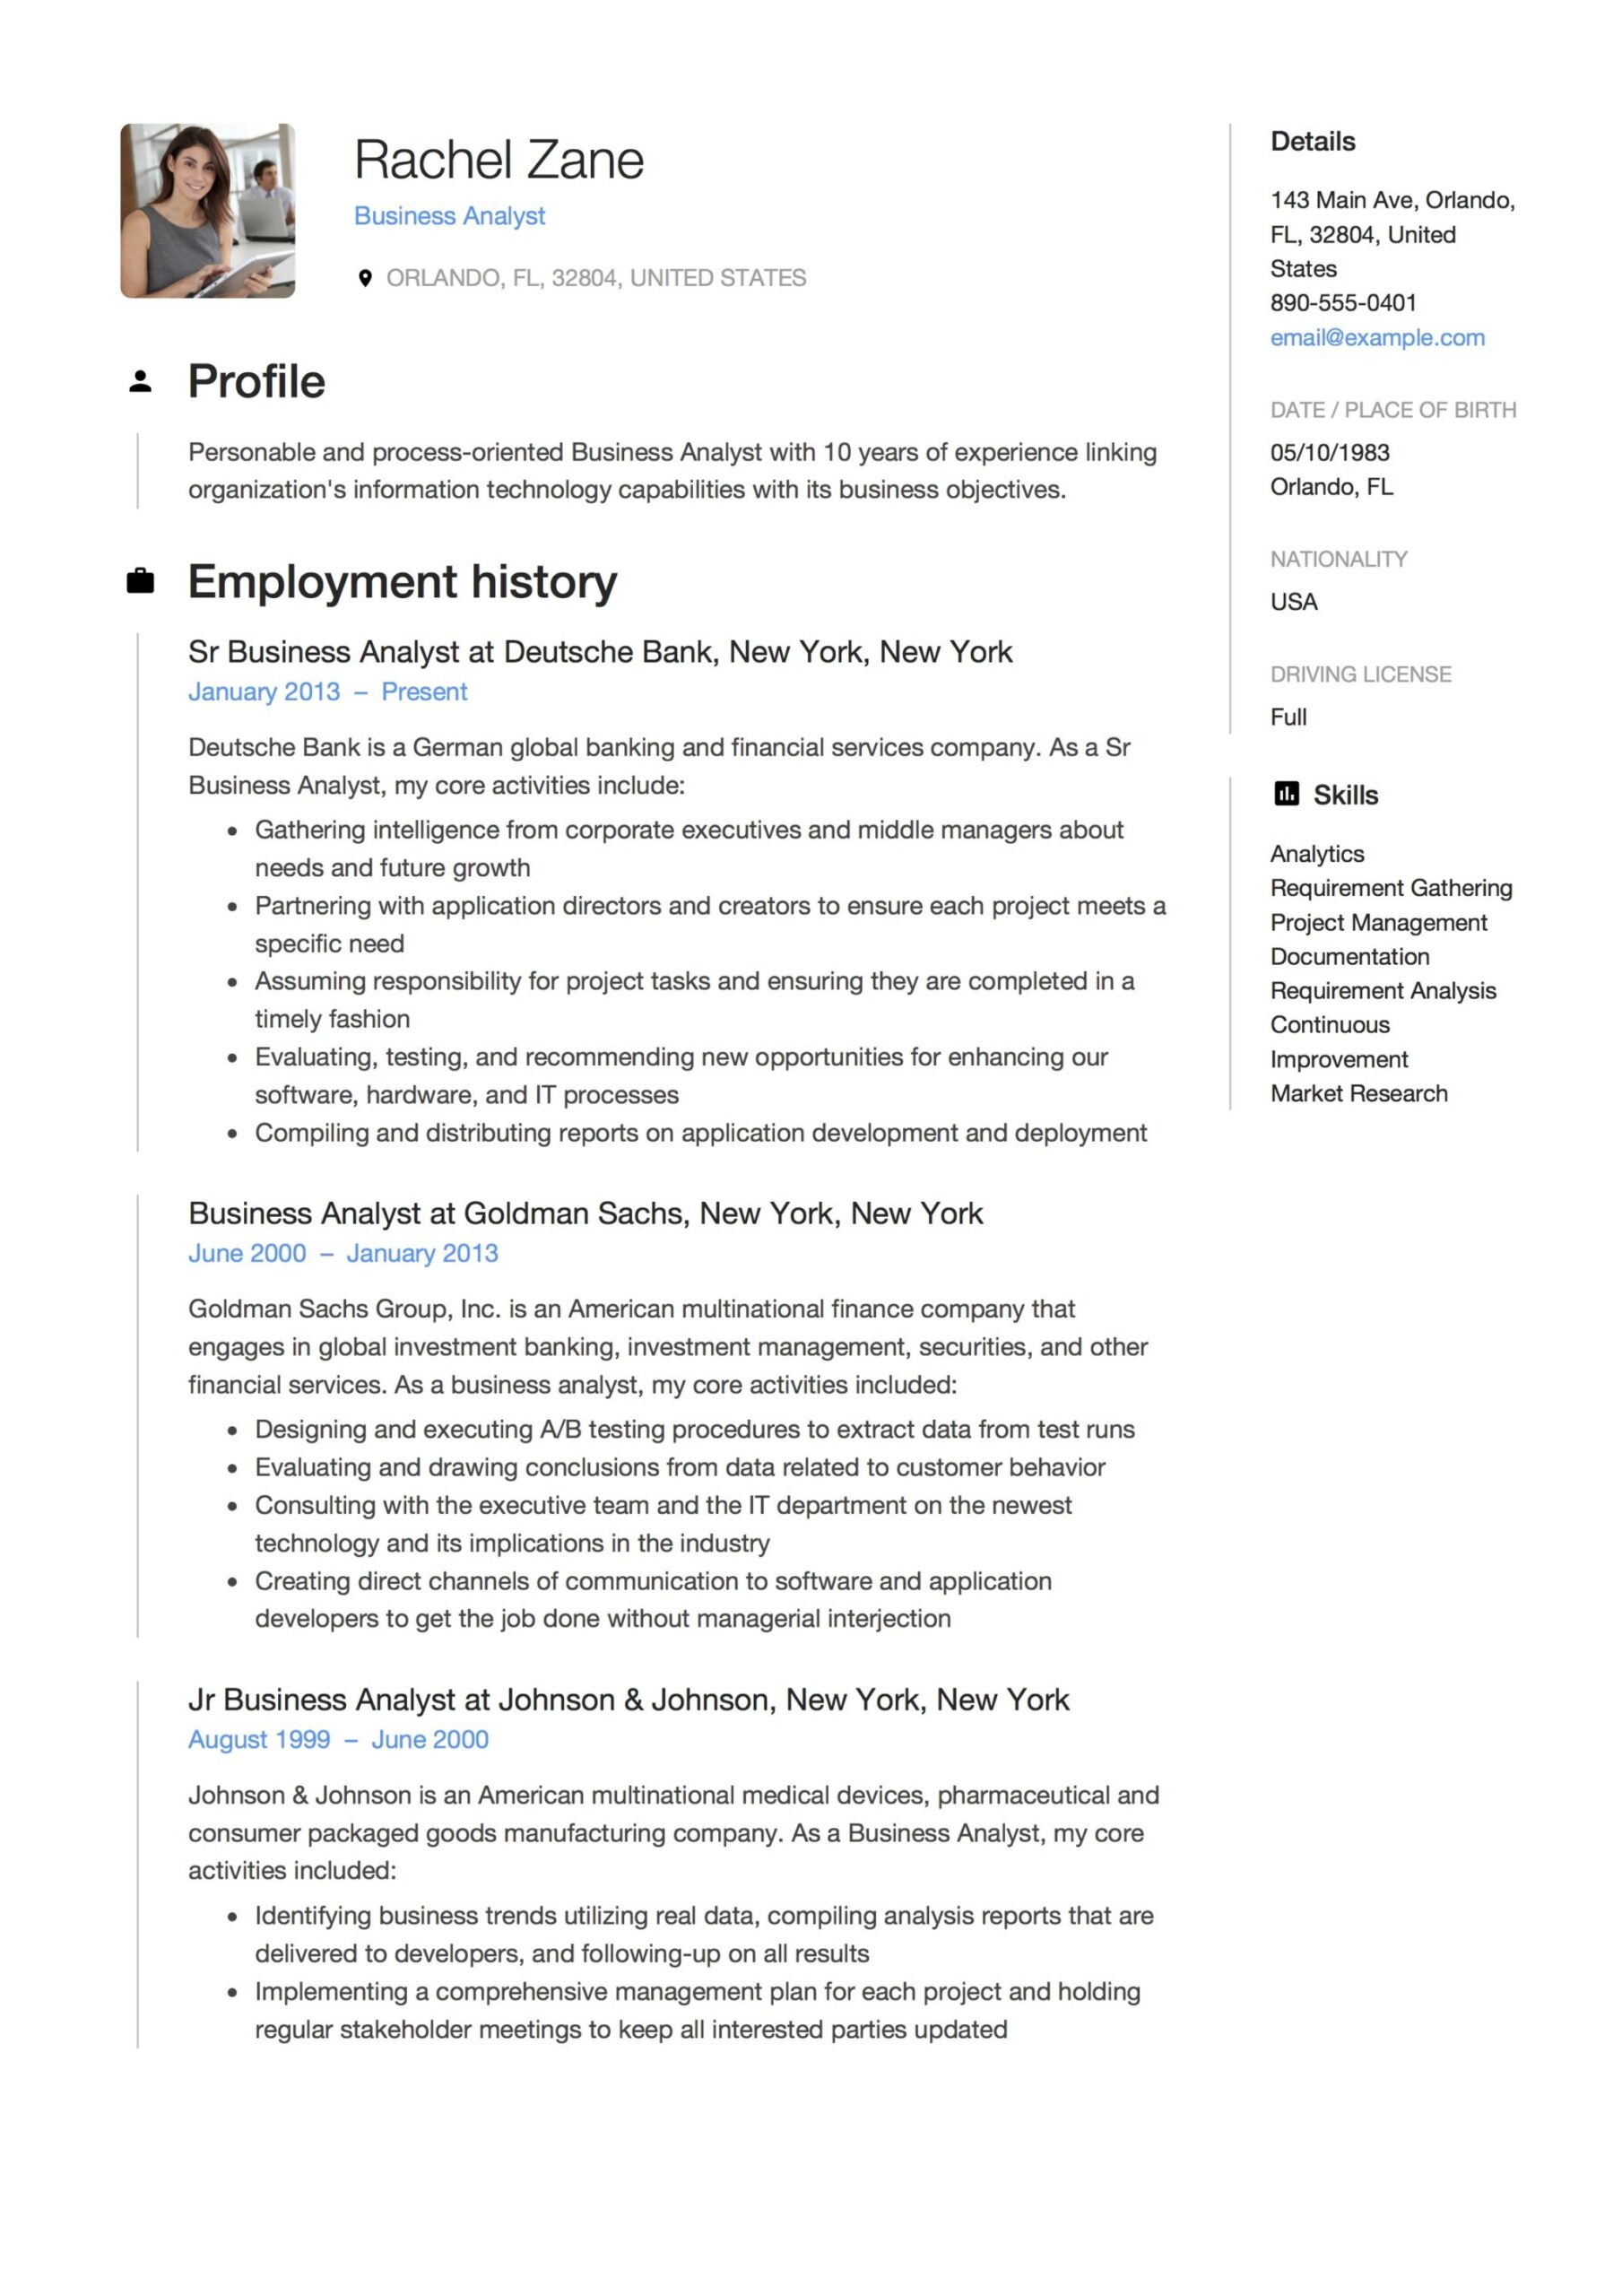 business analyst resume guide templates pdf free downloads timeline format pharmacy Resume Business Analyst Resume Download